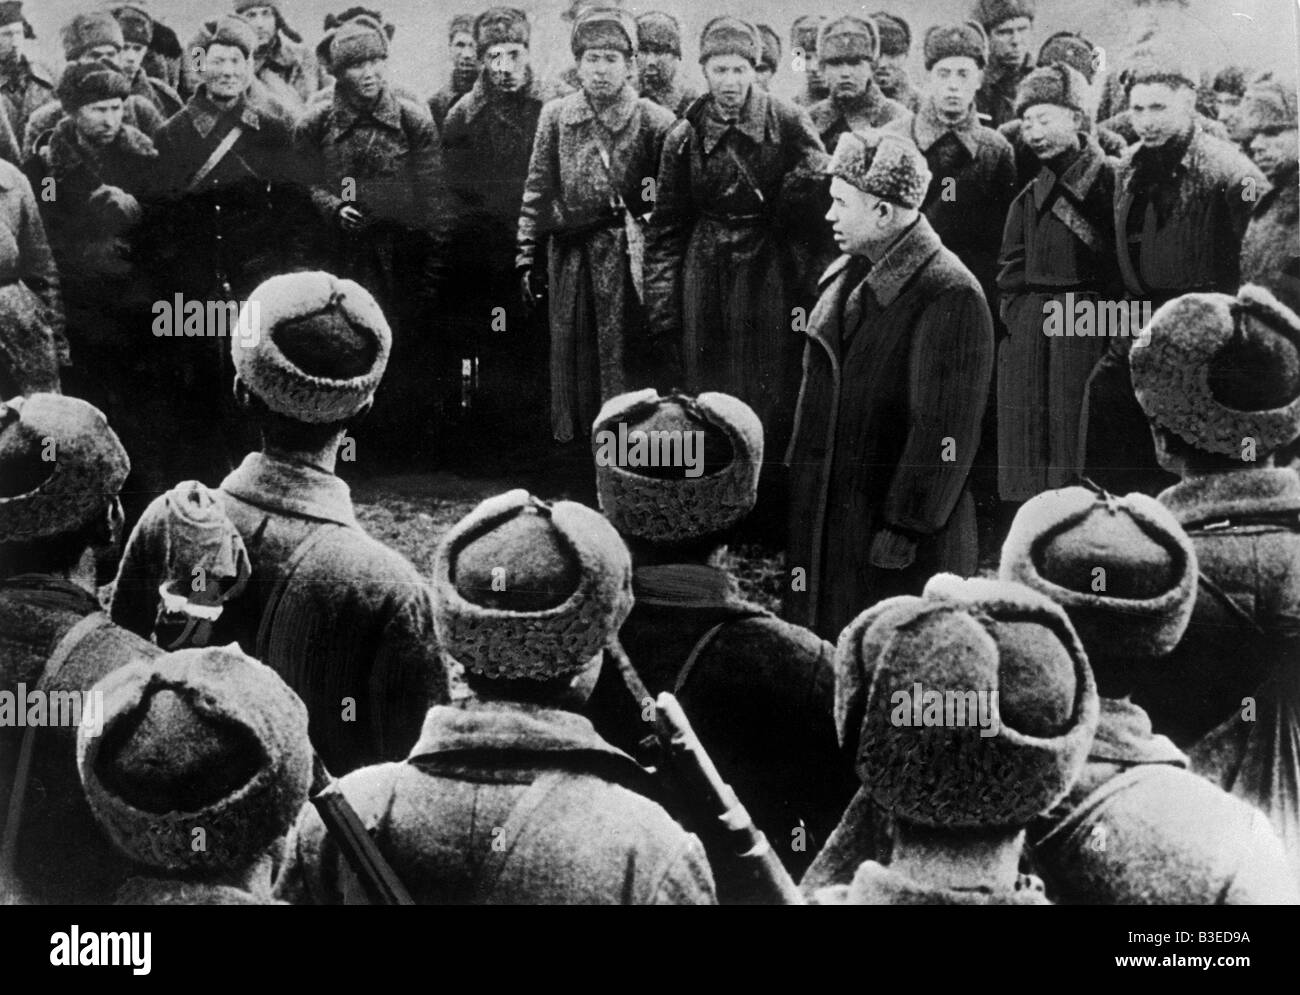 World War Two / Stalingrad / Khrushchev - Stock Image